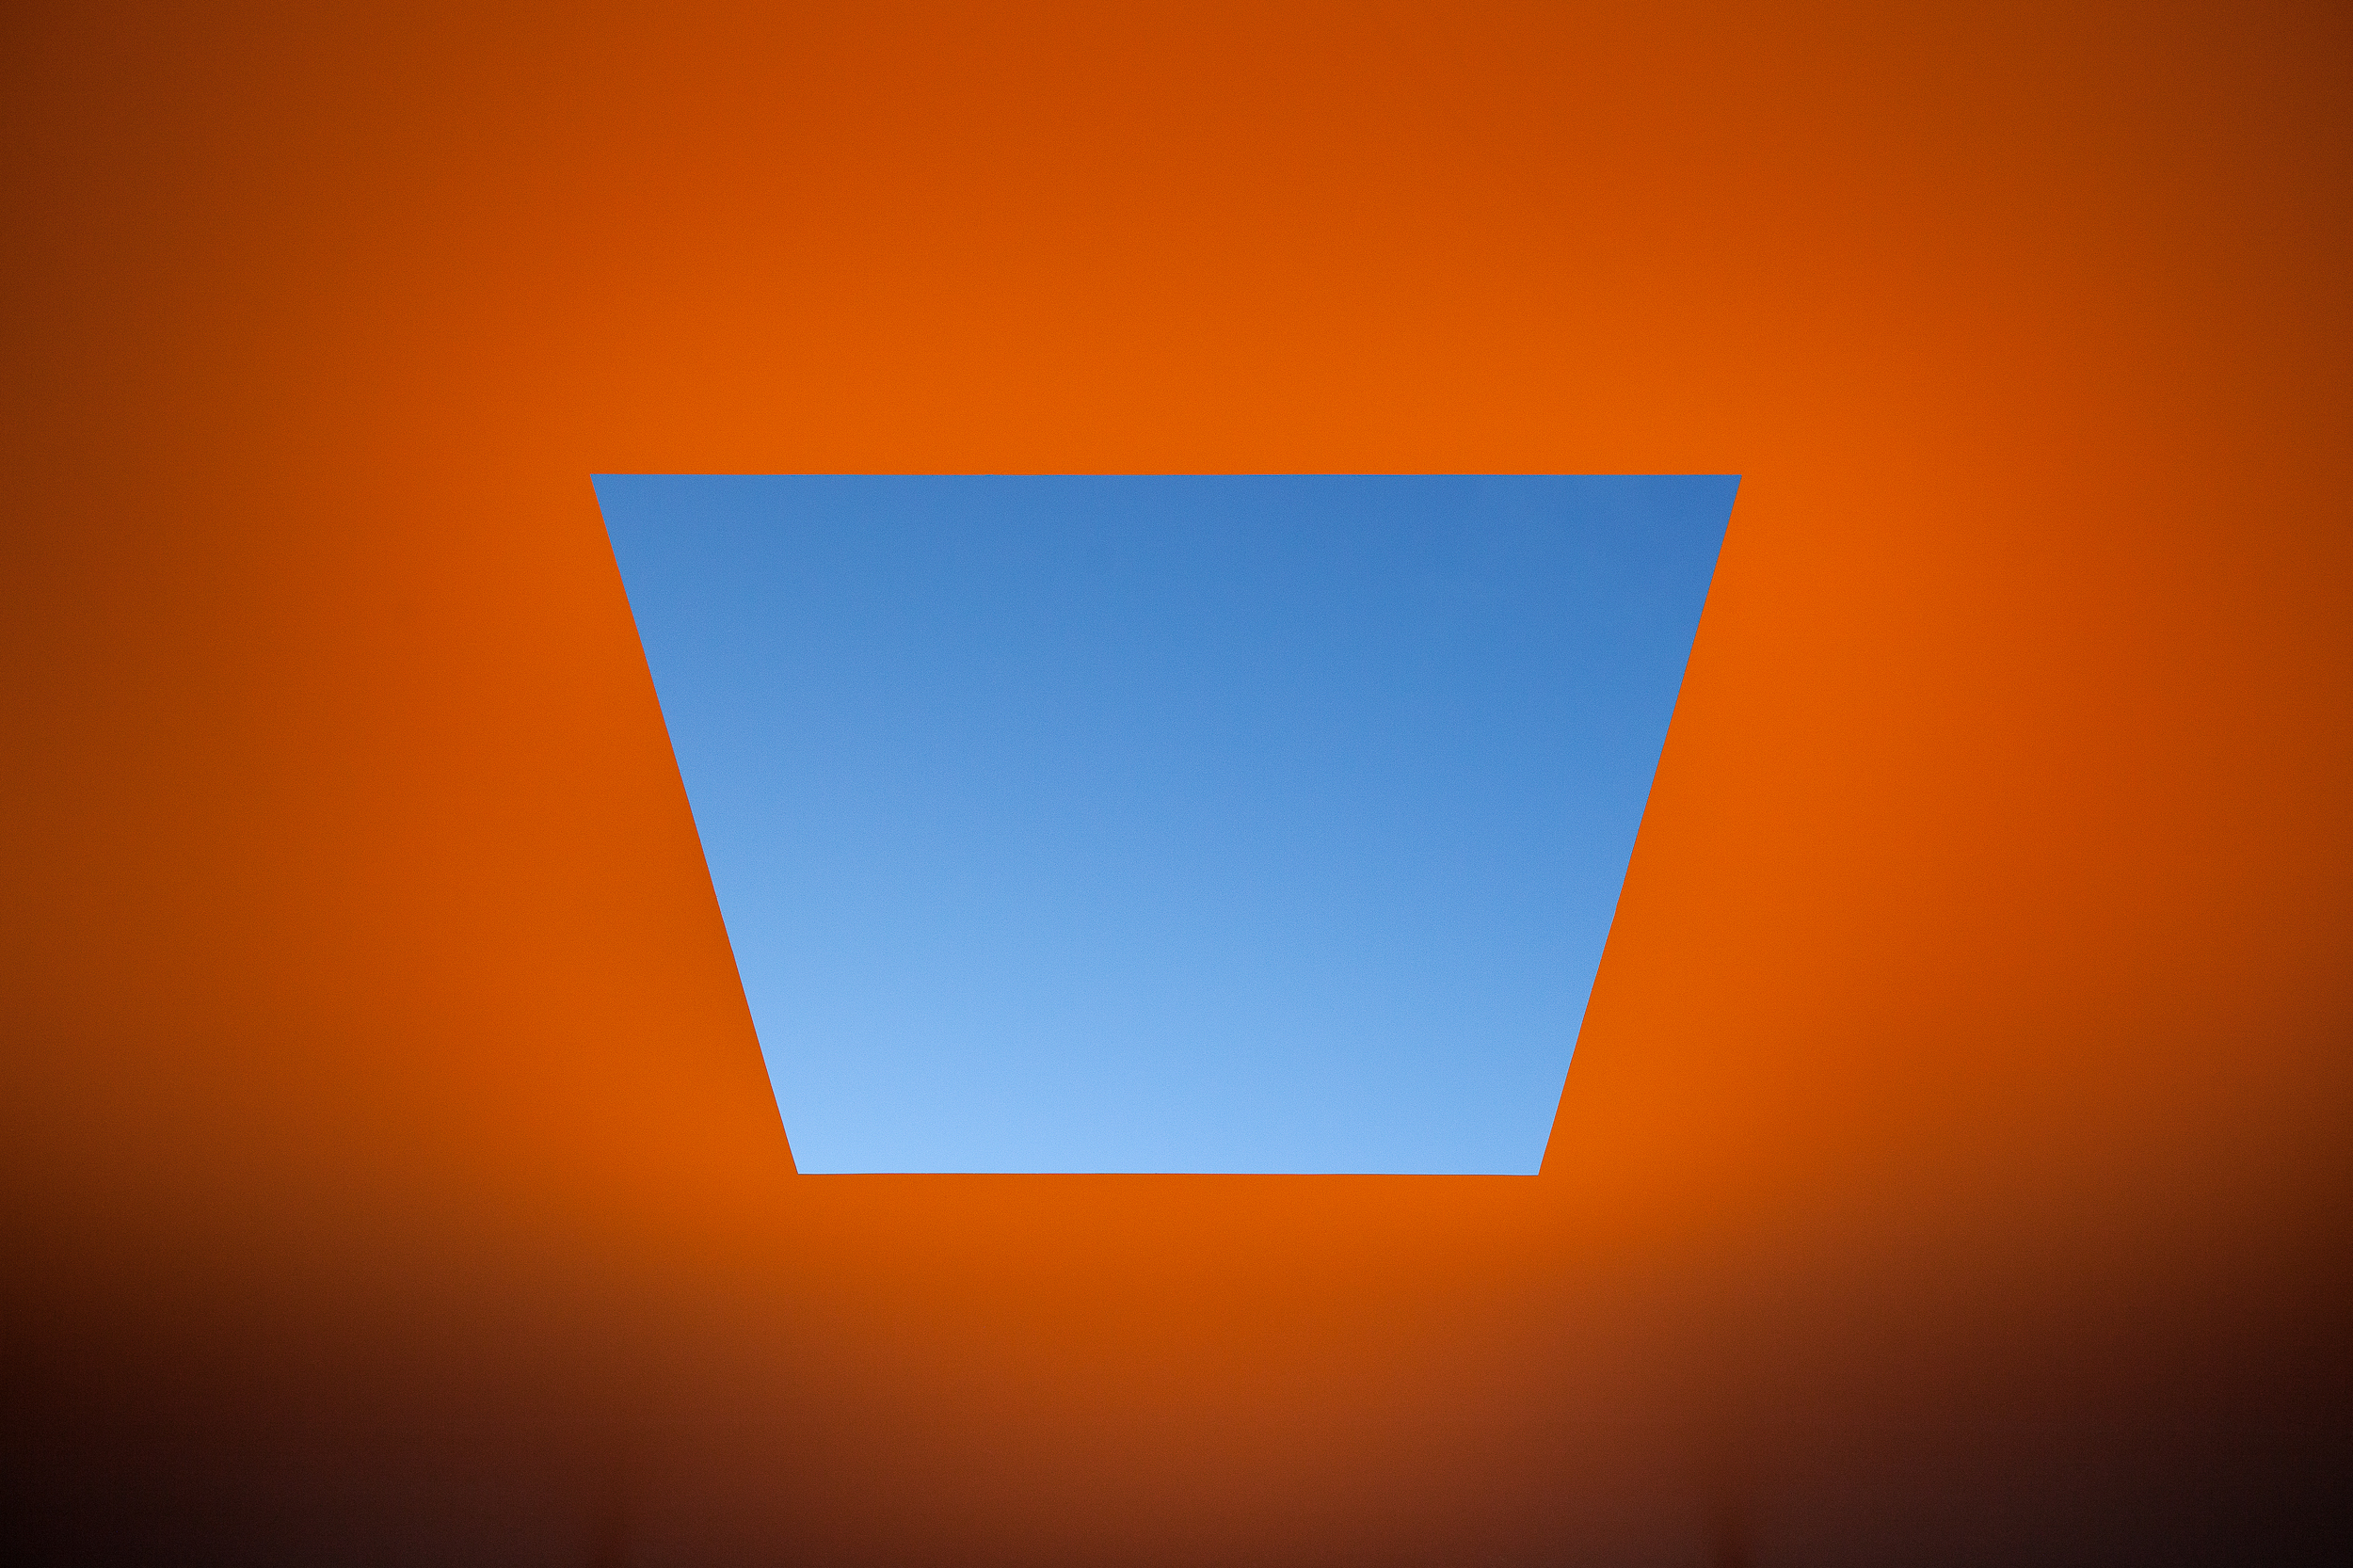 AMARNA 2015  James Turrell (born 1943, Los Angeles, California; lives and works in Flagstaff, Arizona) Skyspace series  Steel frame, fibreglass foam sandwich roof construction, fibreglass reinforced concrete seating imensions: 7 (H) 28.3 x (W) x 21.15m (D)  © James Turrell